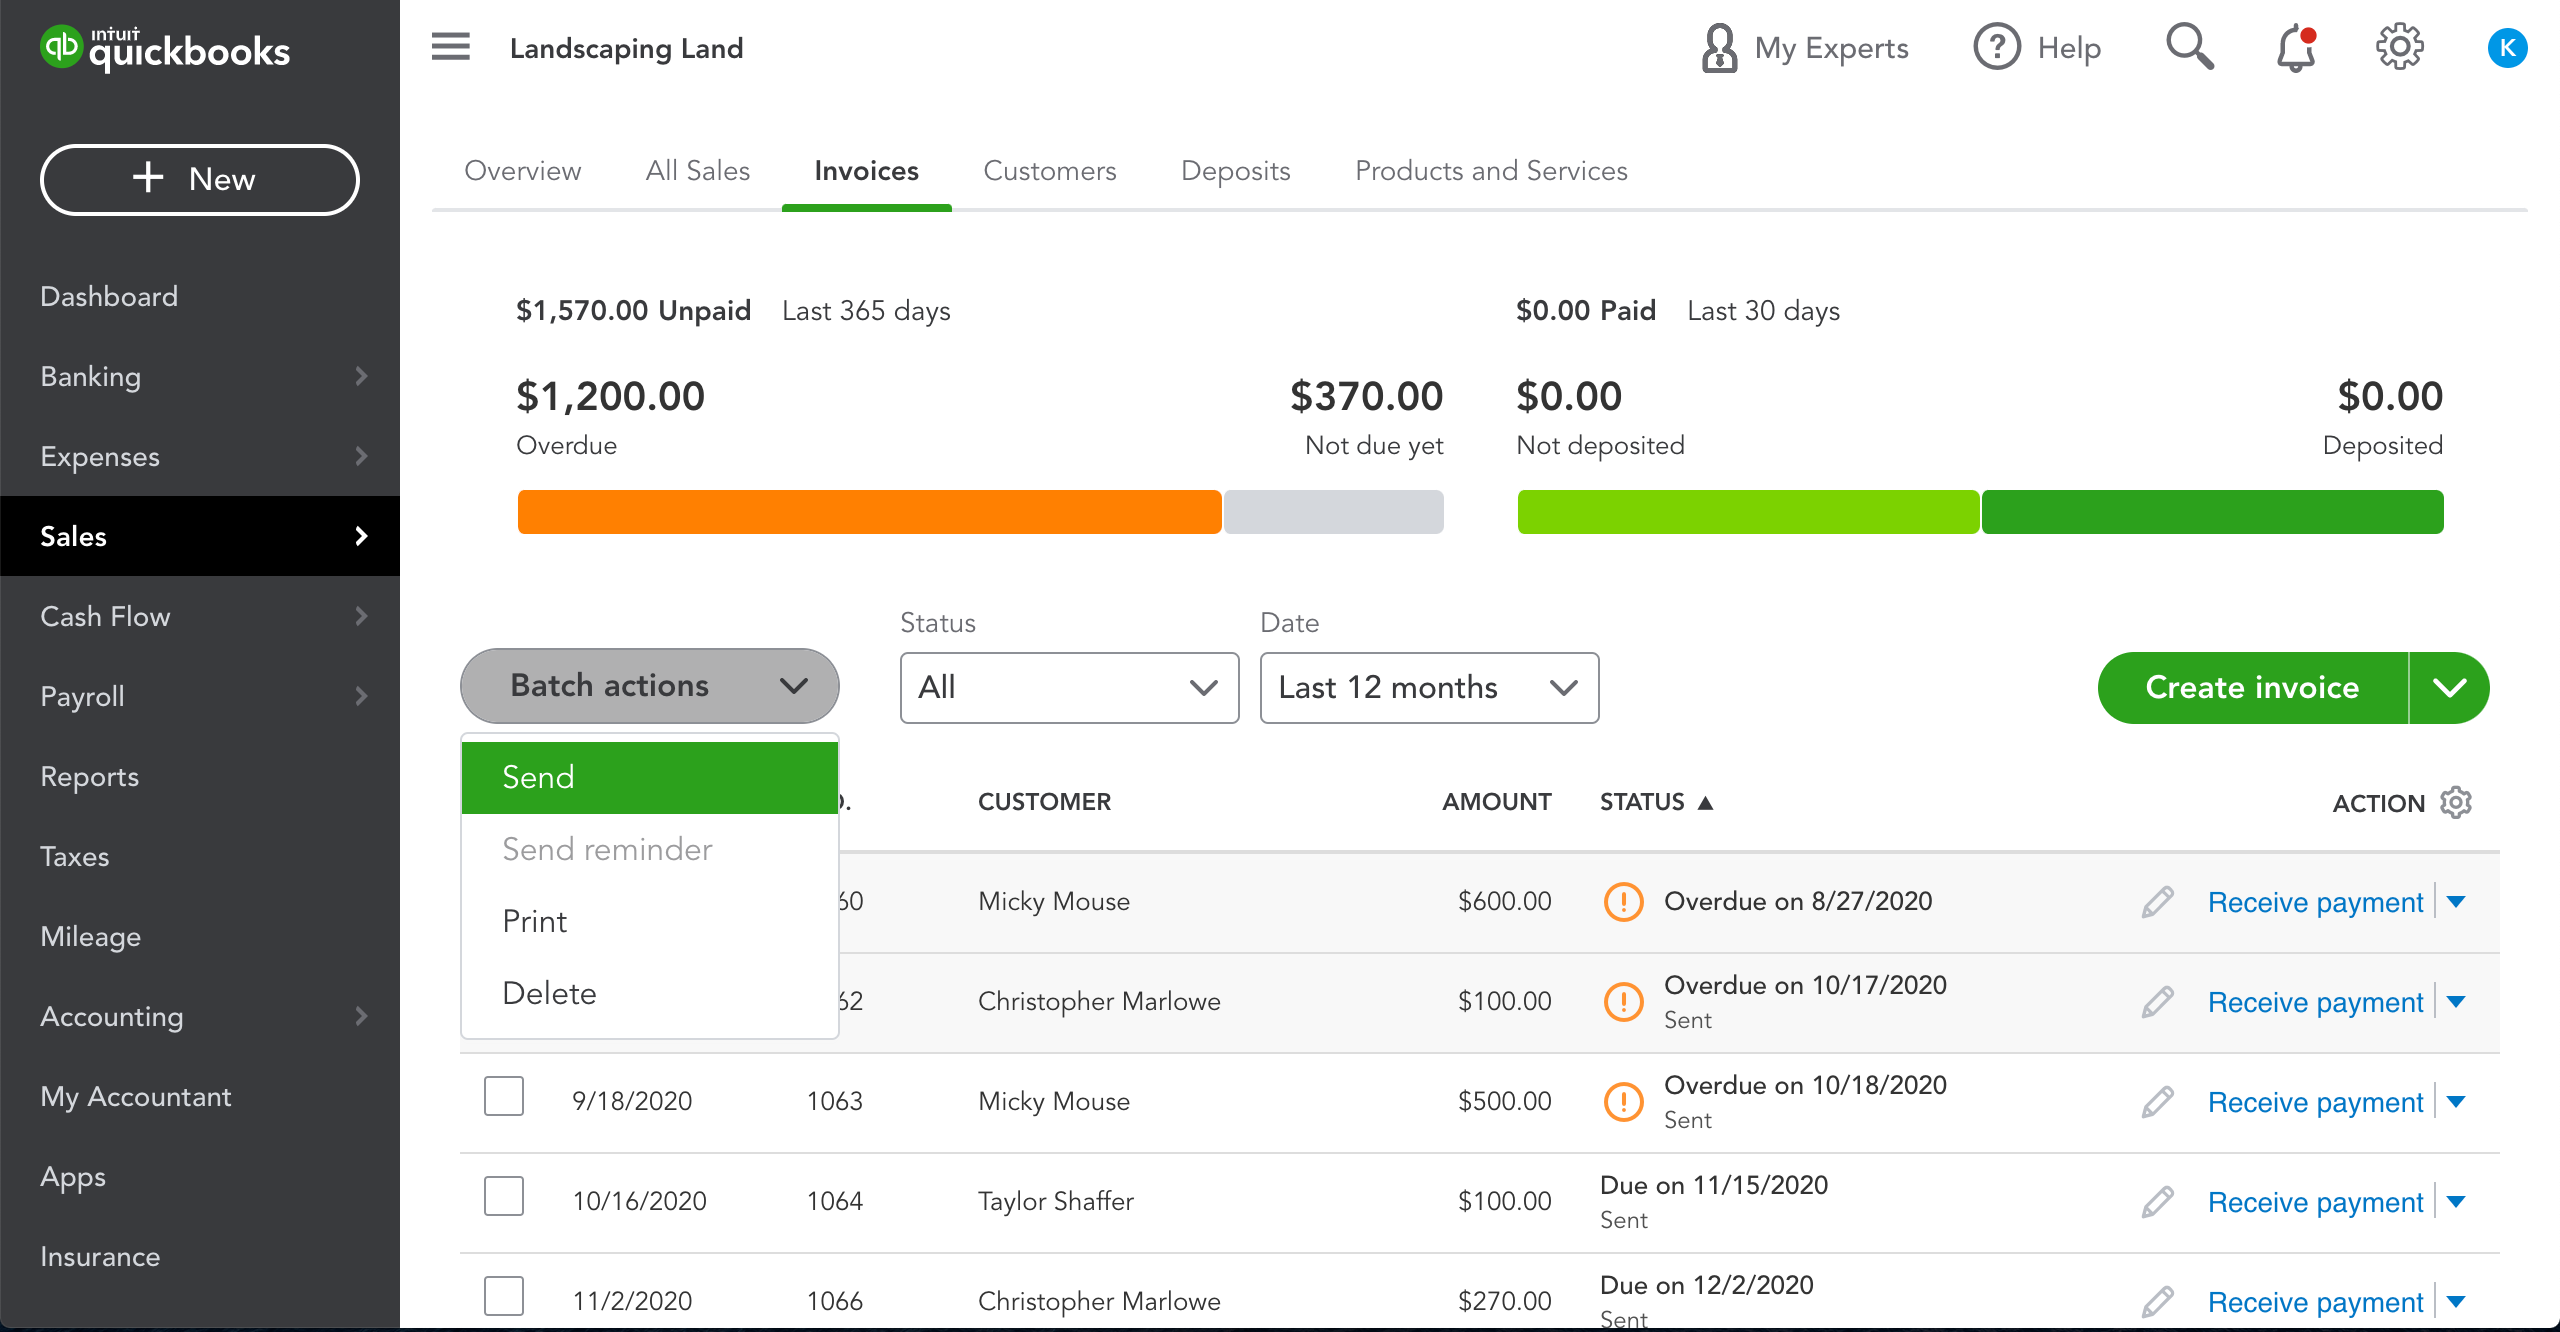 quickbooks-online-invoices-batch-actions.png